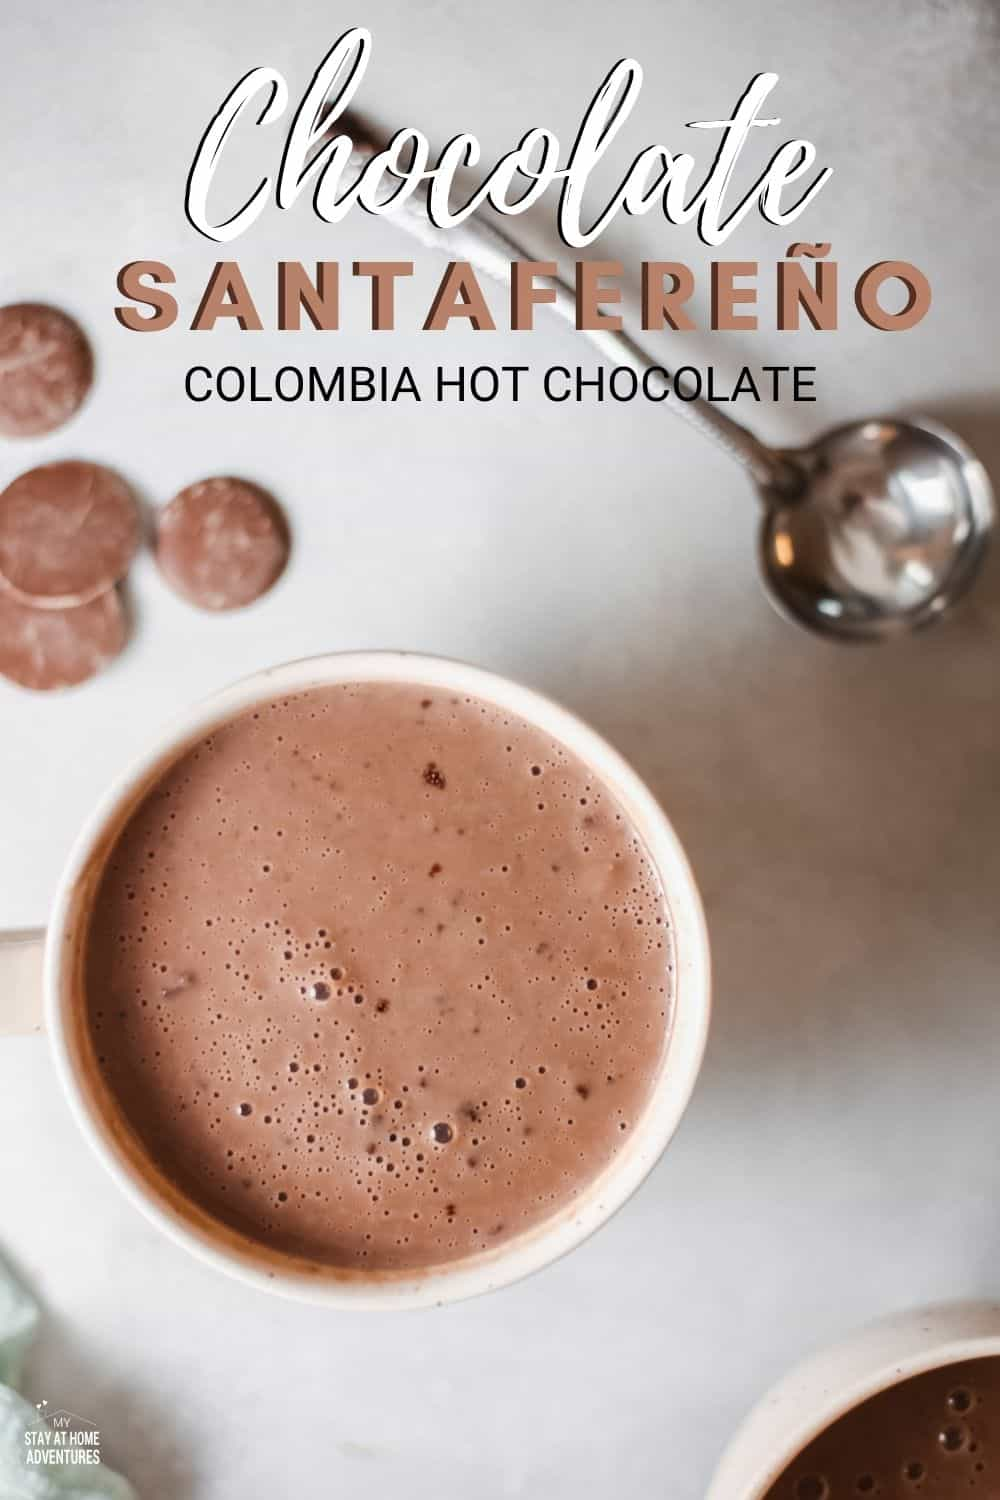 Chocolate Santafereño is a Colombian hot chocolate with the wonderful addition of warm spices, such as cinnamon and clove. via @mystayathome